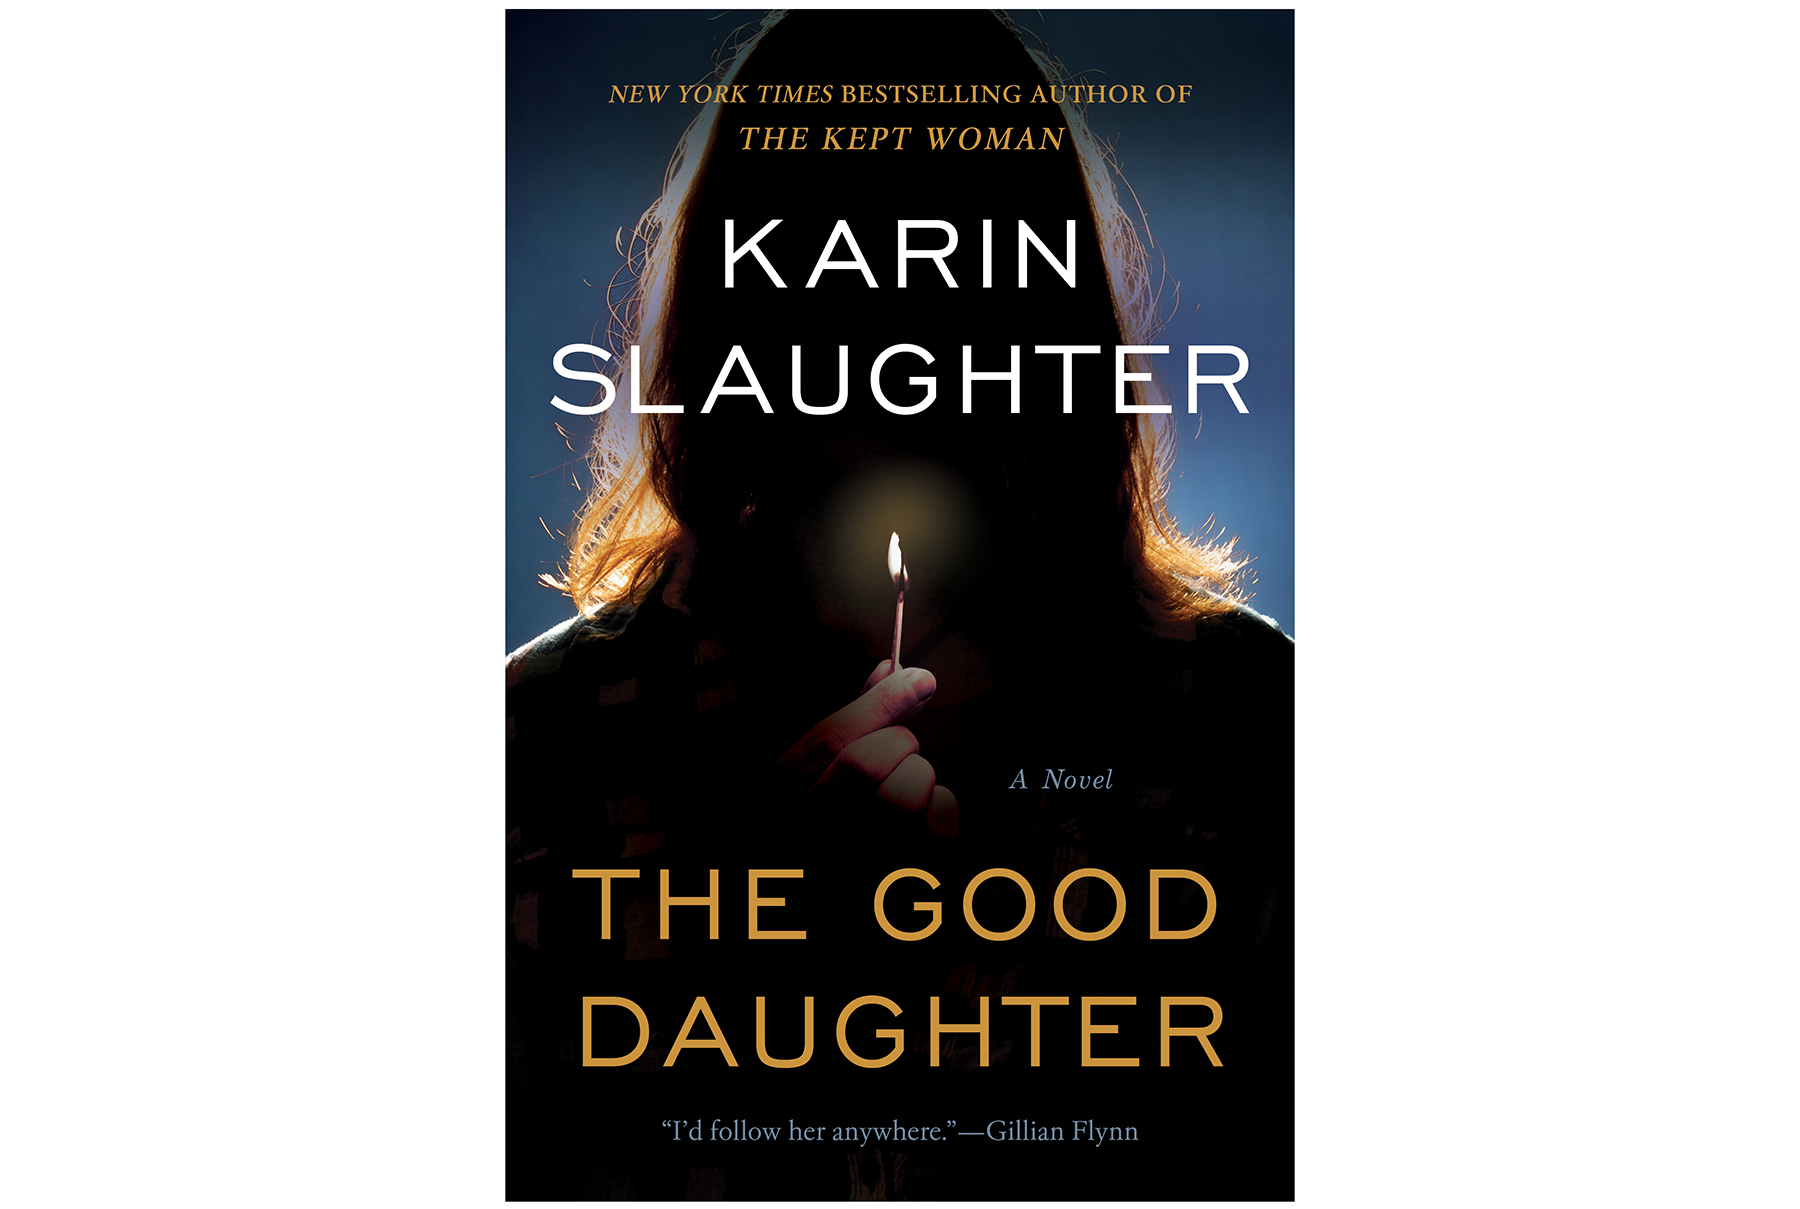 The Good Daughter, by Karin Slaughter